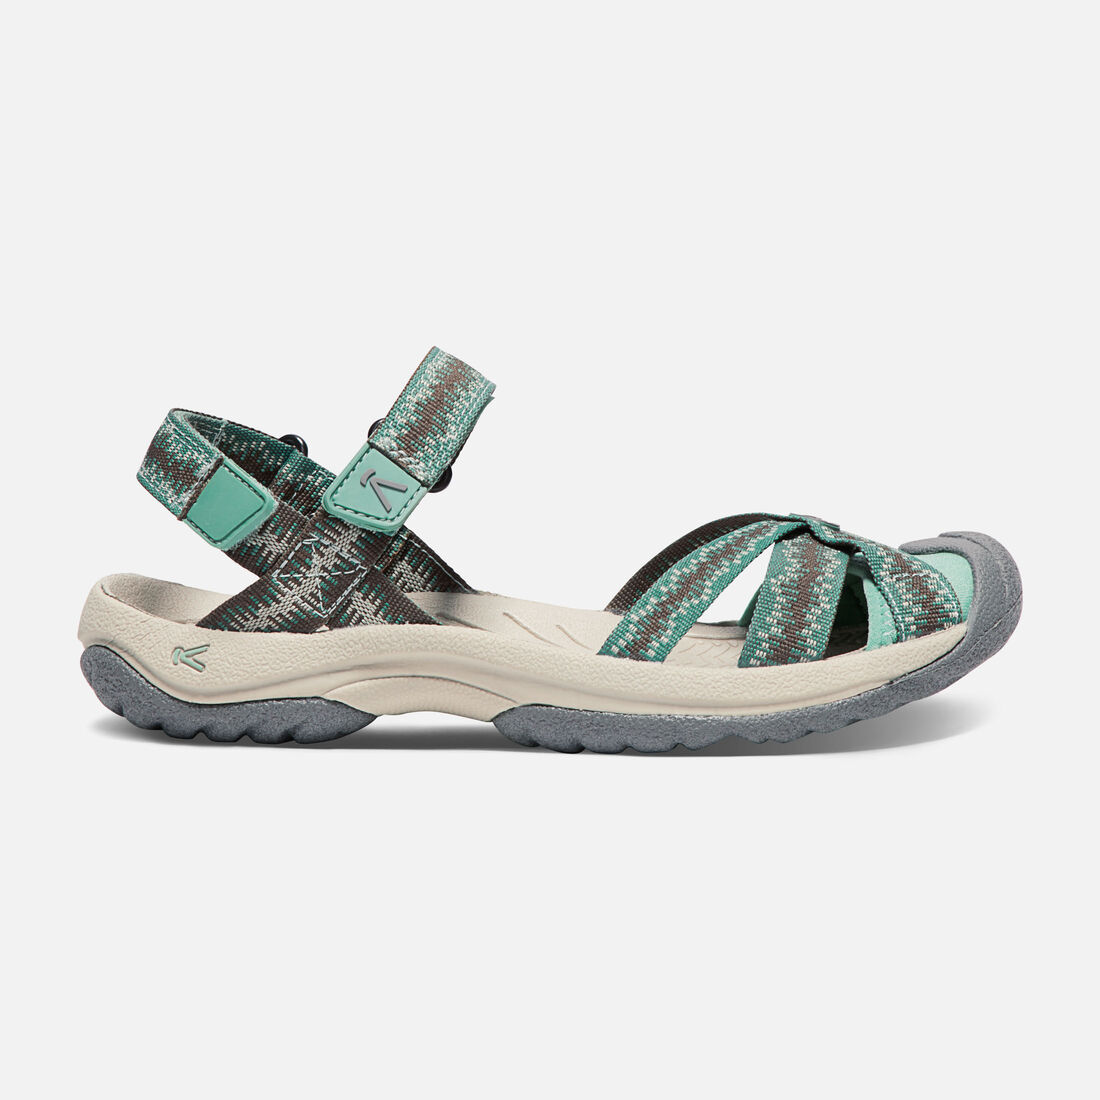 Women's BALI STRAP in Canteen/Malachite - large view.